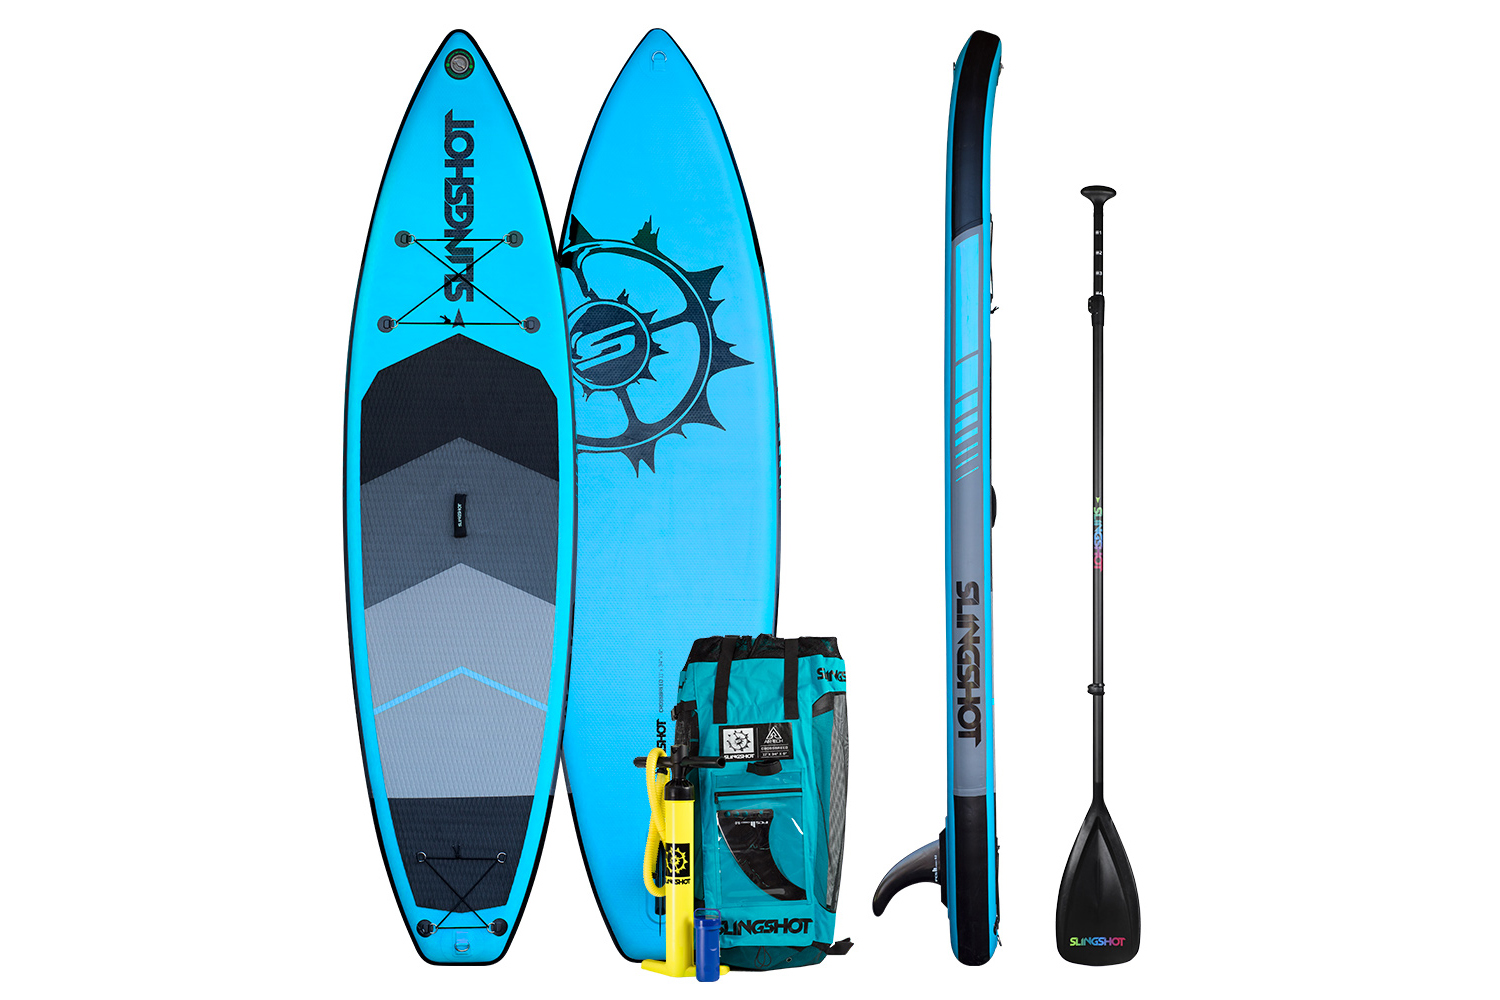 Sling Shot inflatable SUP